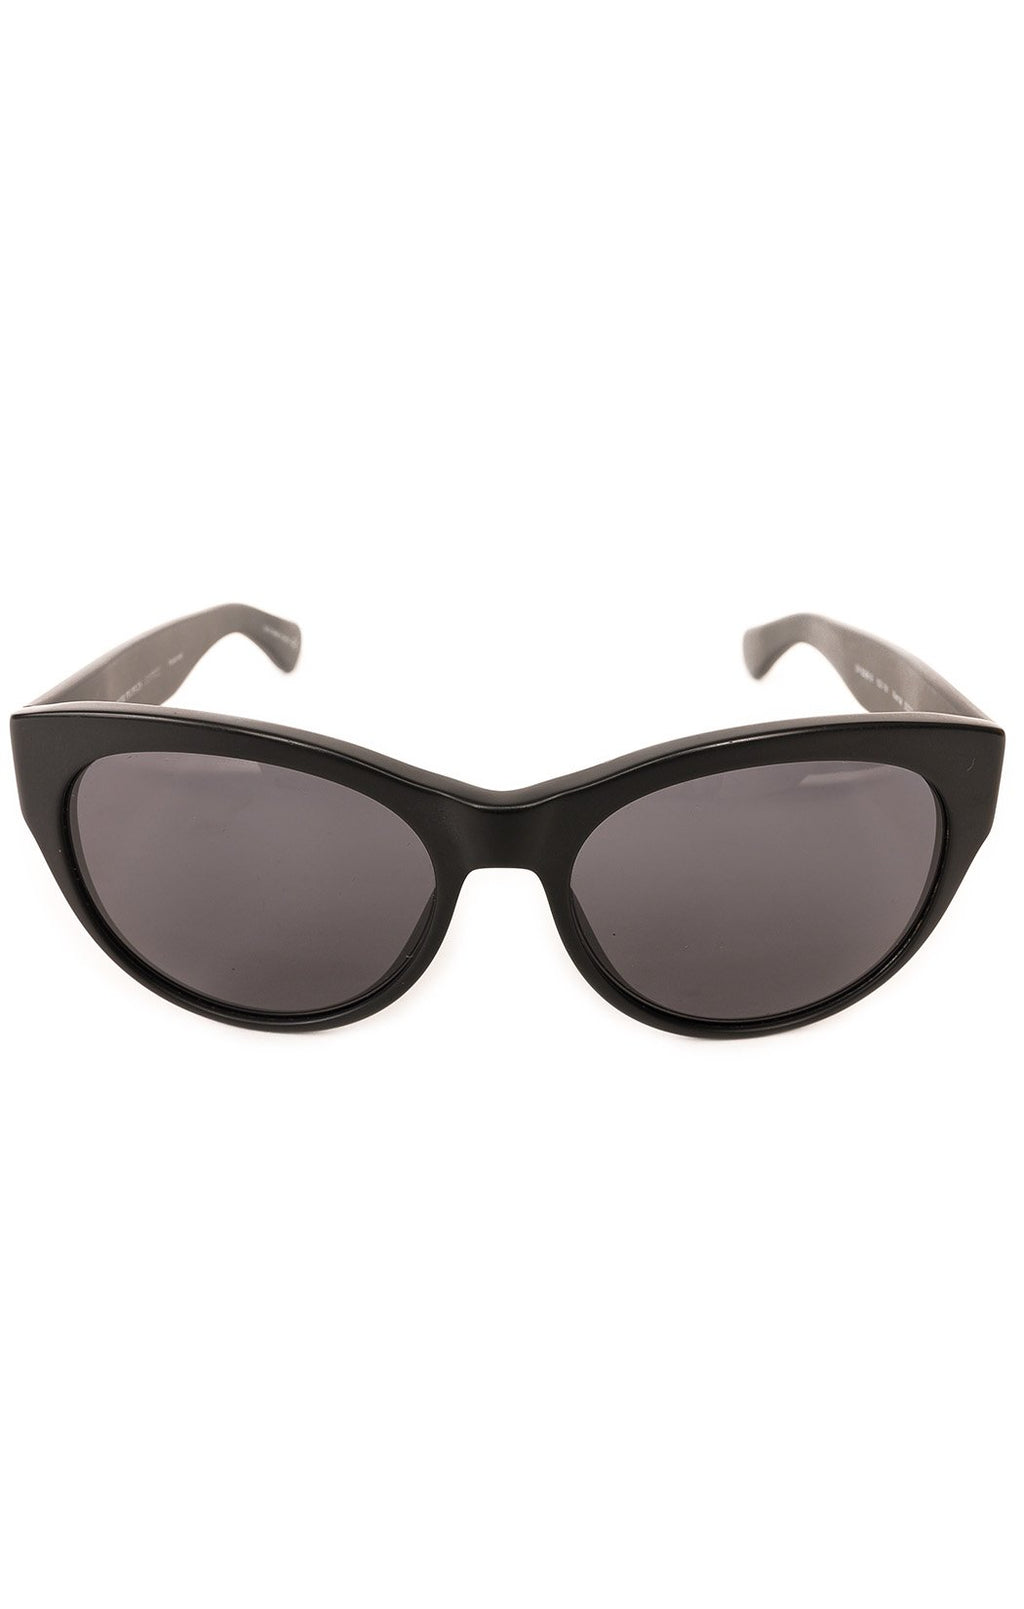 "Front view of OLIVER PEOPLES Sunglasses  Size: 5.5"" W x 2"" H"